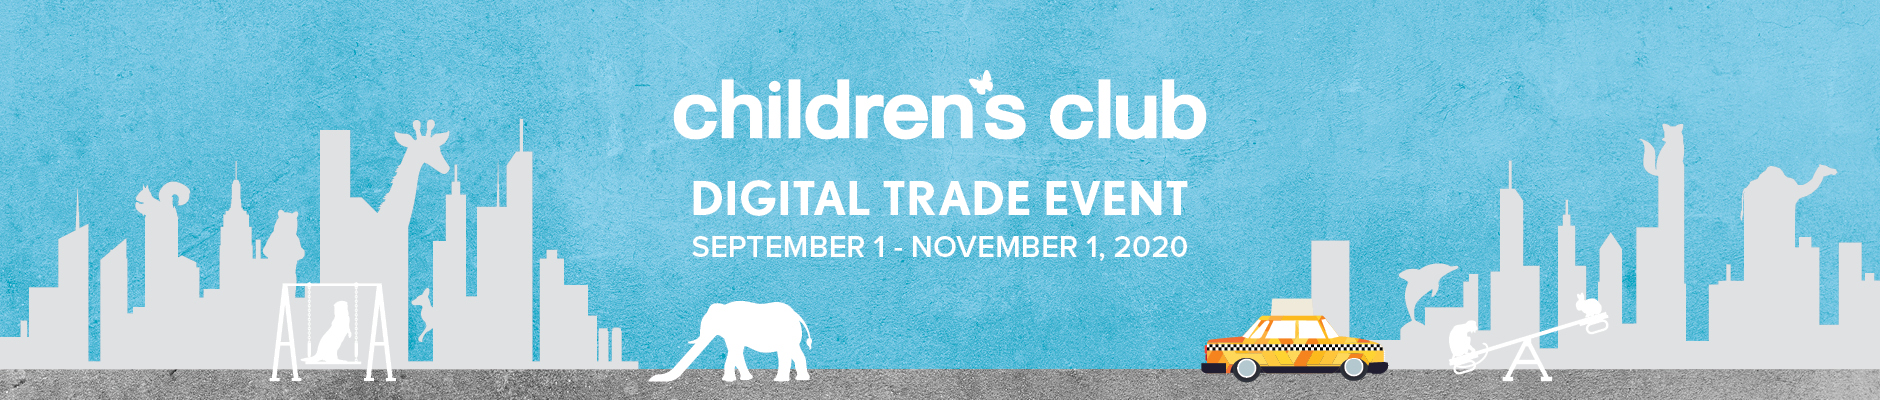 Children's Cub, New York. Jacob Javits Center. September 22-24, 2020.